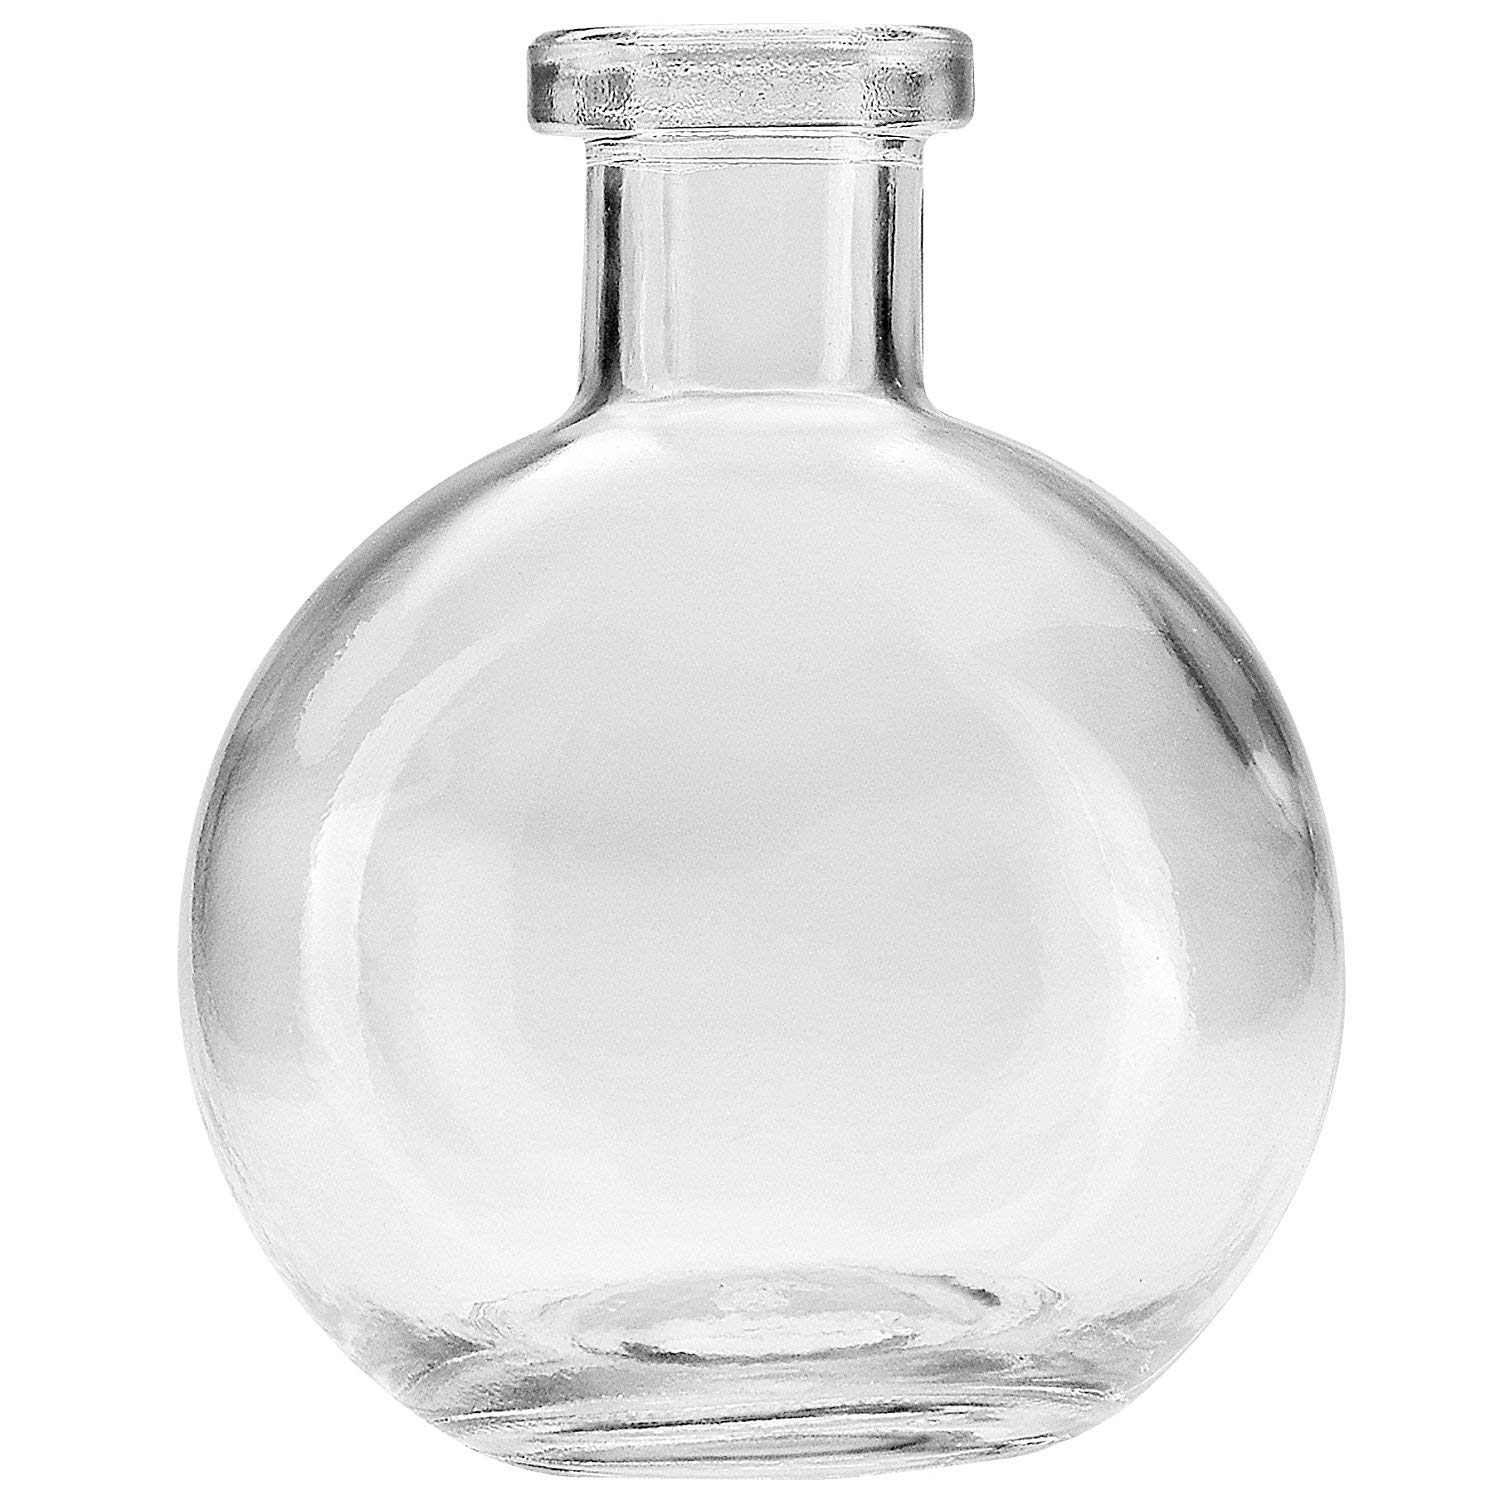 Koyal Wholesale Glass Bud Vases, Home Decor Vases, Floral Containers (Round, 4-inch)